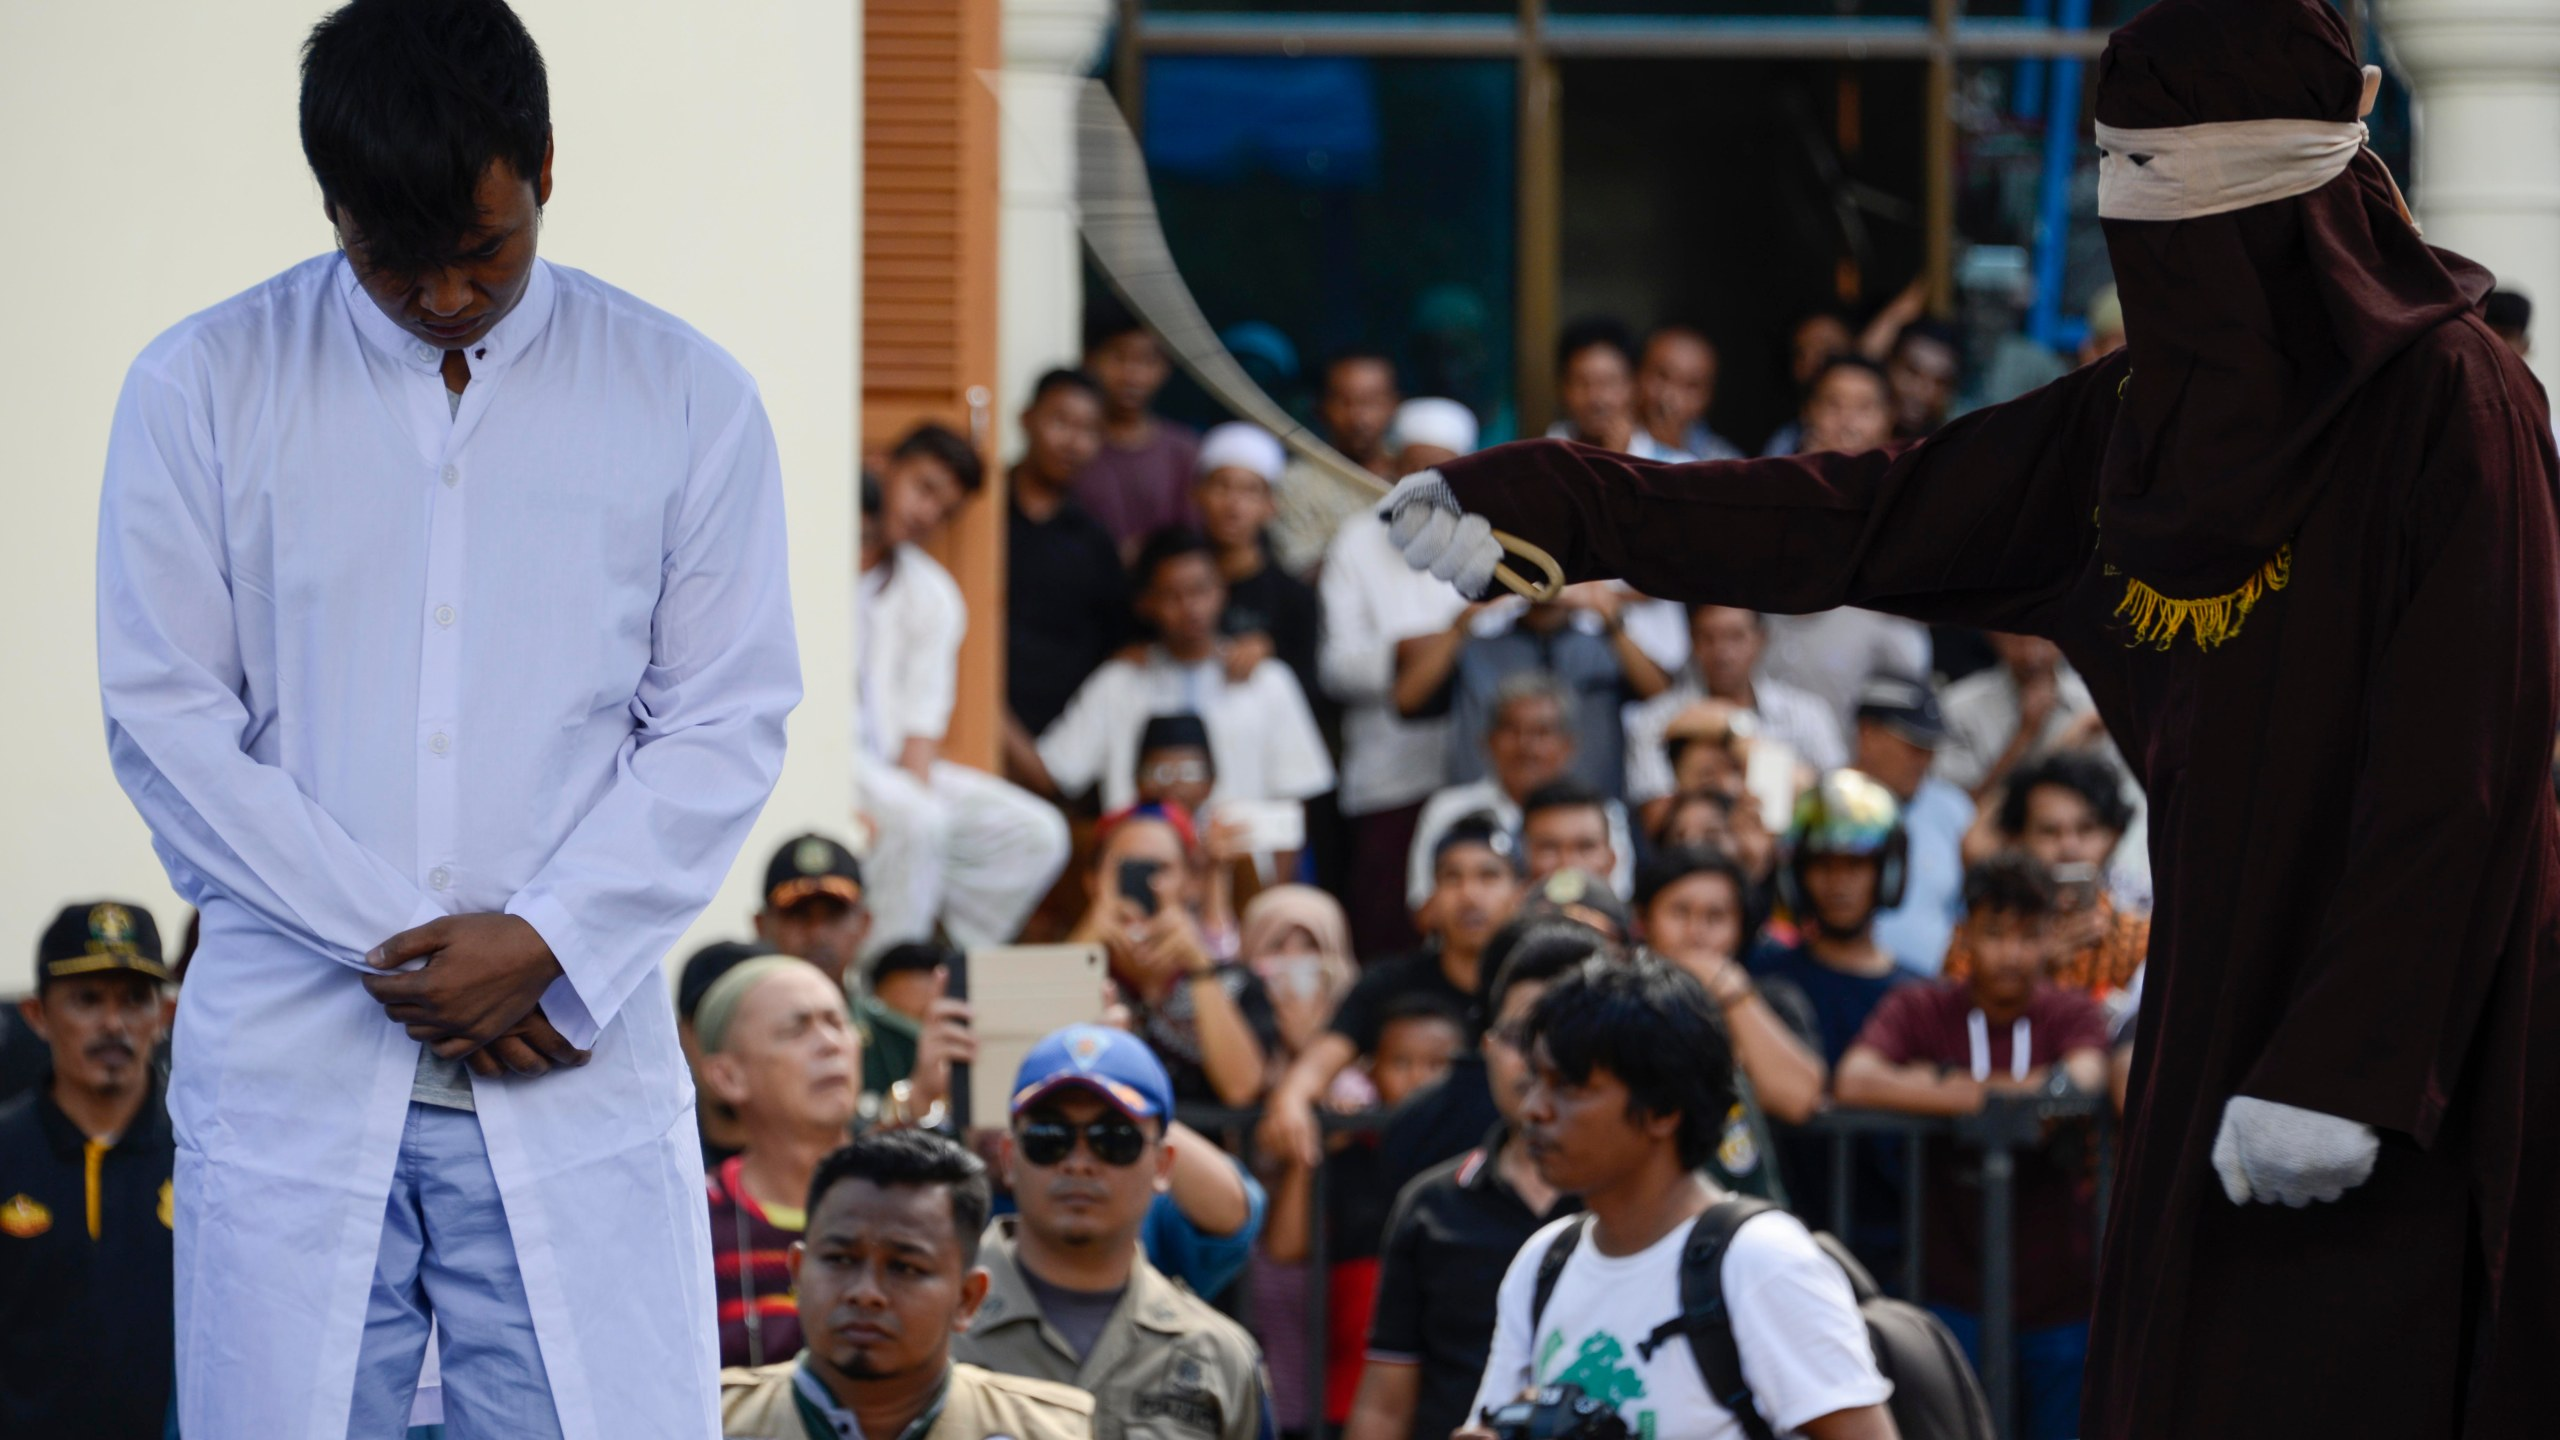 A member of Indonesia's Sharia police, right, whips a man, left, accused of having gay sex during a public caning ceremony outside a mosque in Banda Aceh, capital of Aceh province on July 13, 2018. (Credit: Chaideer Mahyuddin/AFP/Getty Images)